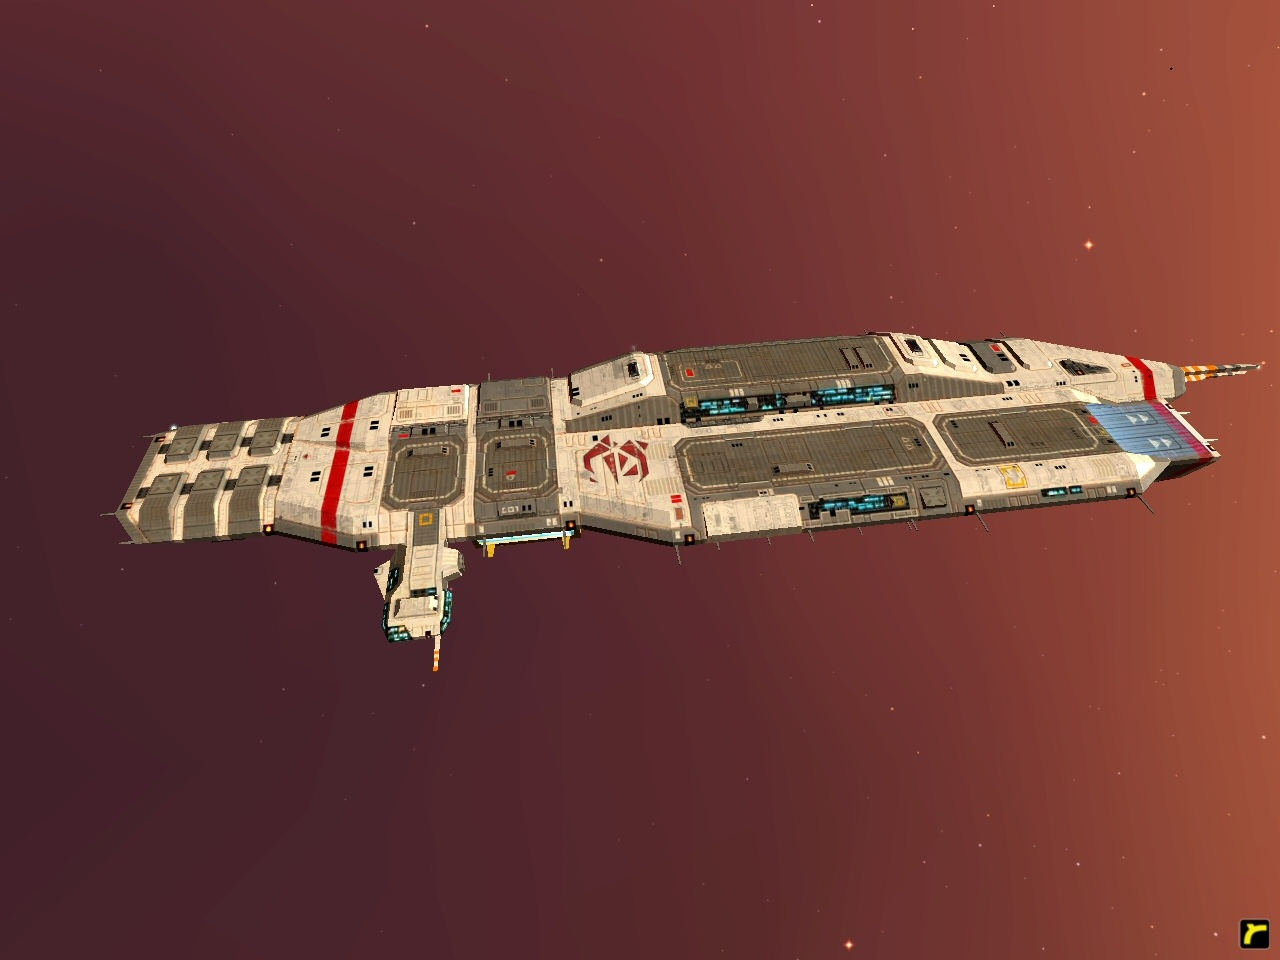 Homeworld Space Station - Pics about space